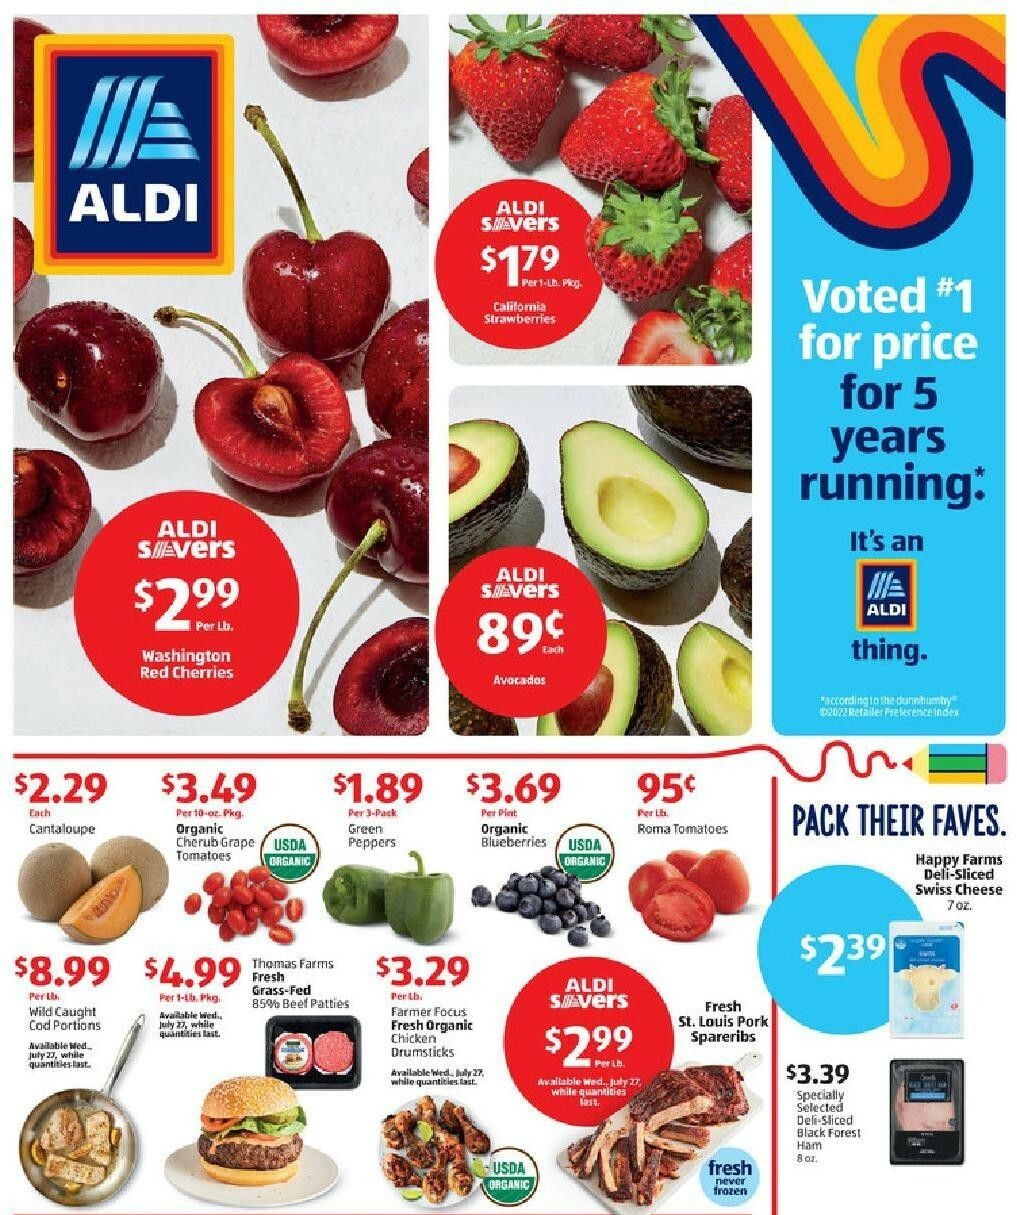 Aldi Towson Md Hours Weekly Ad